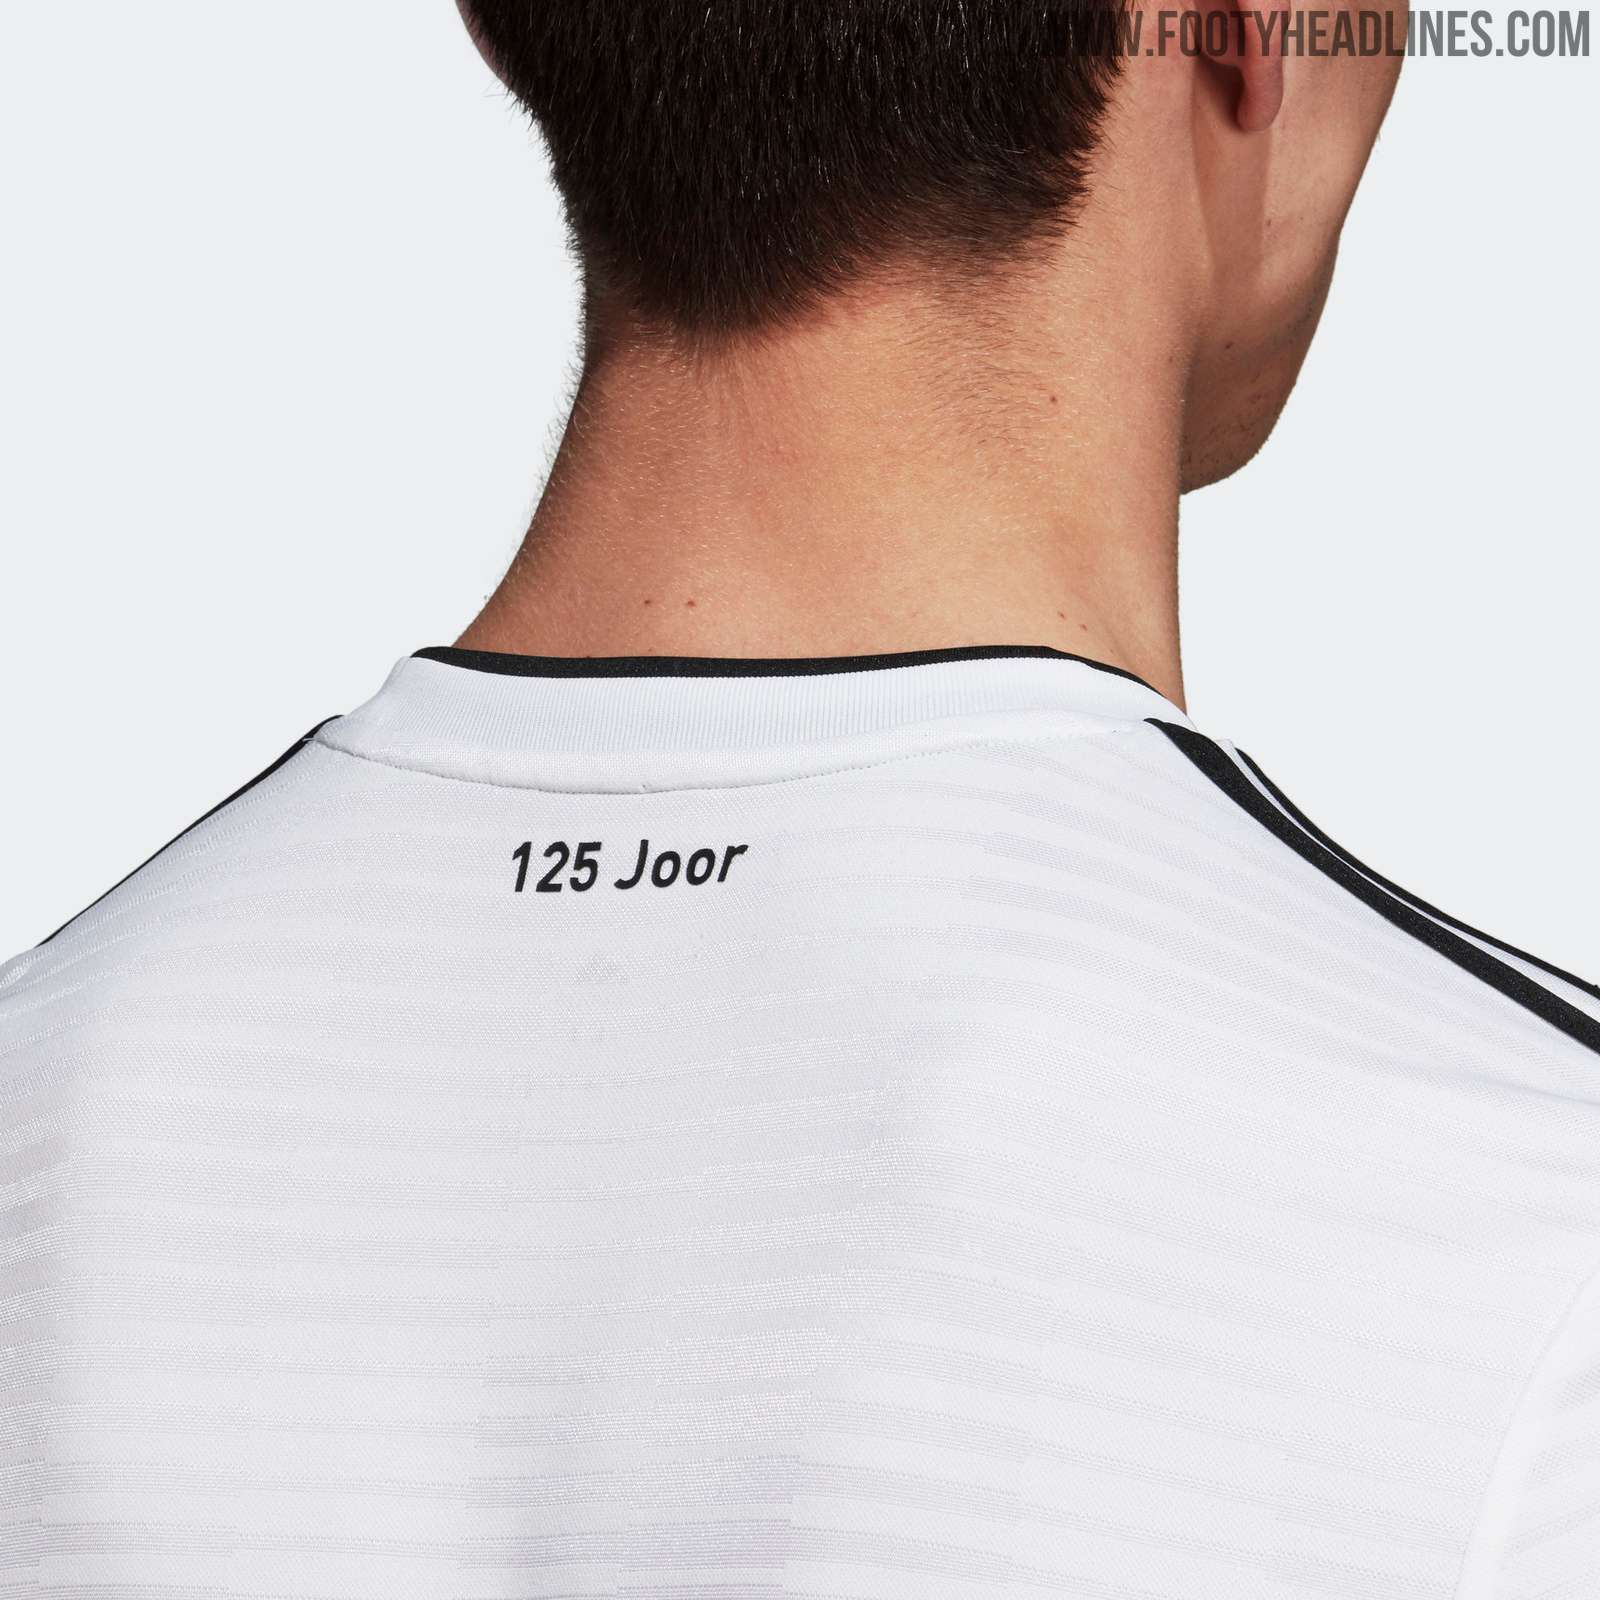 97483f4eb  125 Joor  is written on the upper back of the new Basel away jersey. Basel  18-19 Home Kit